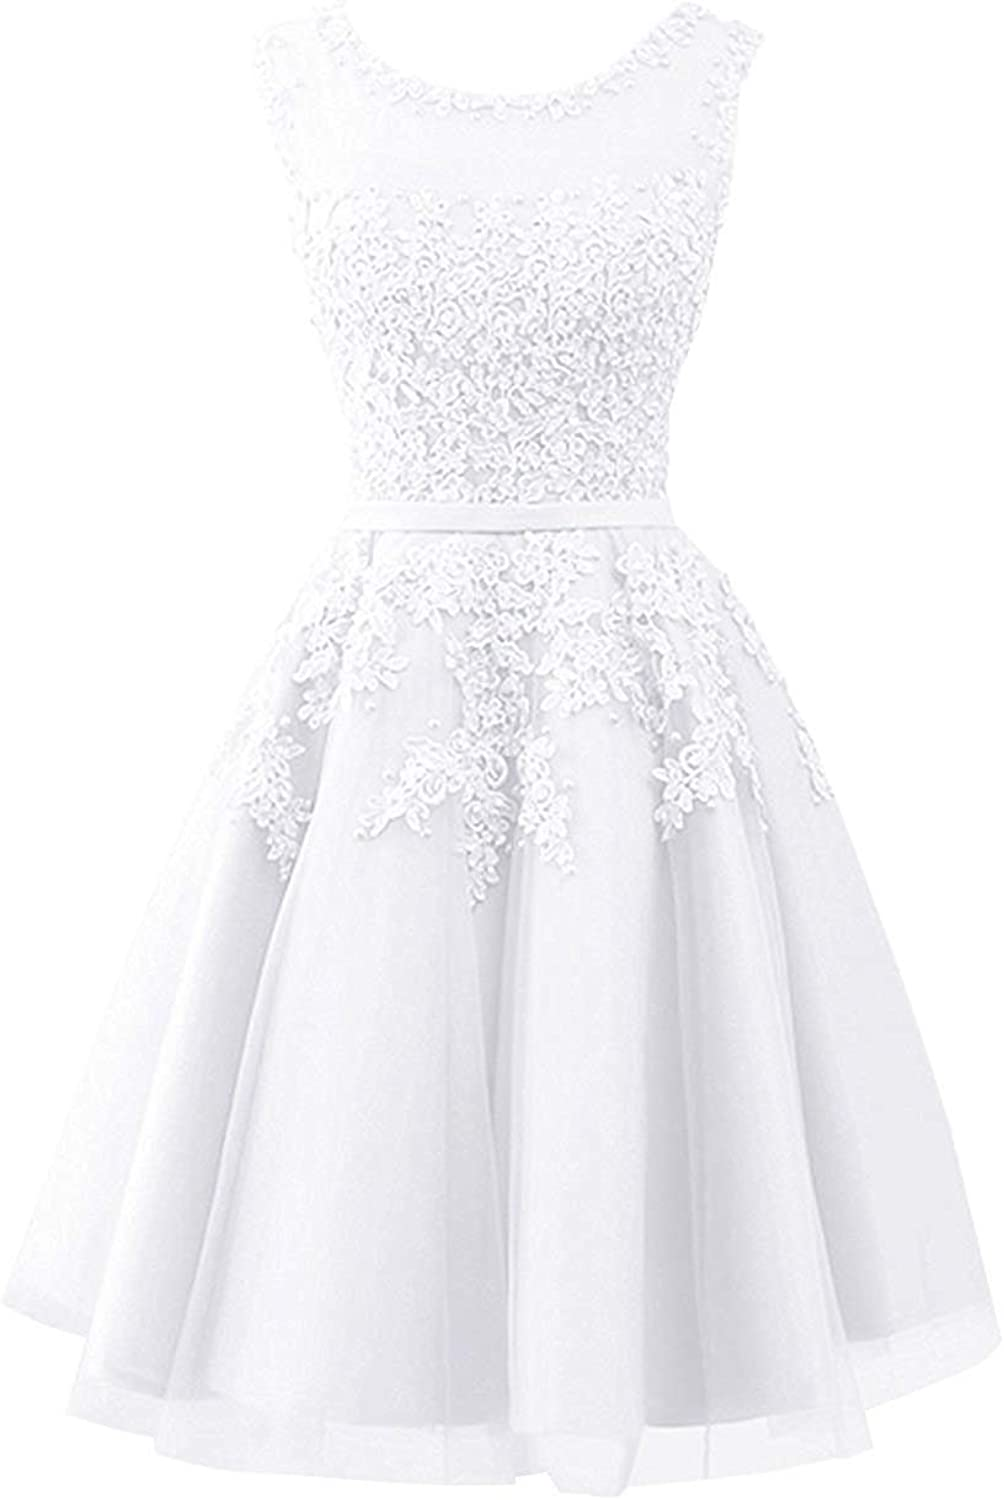 Jingliz Short Tulle Junior Homecoming Dresses Lace Appliques Prom Evening Formal Gowns